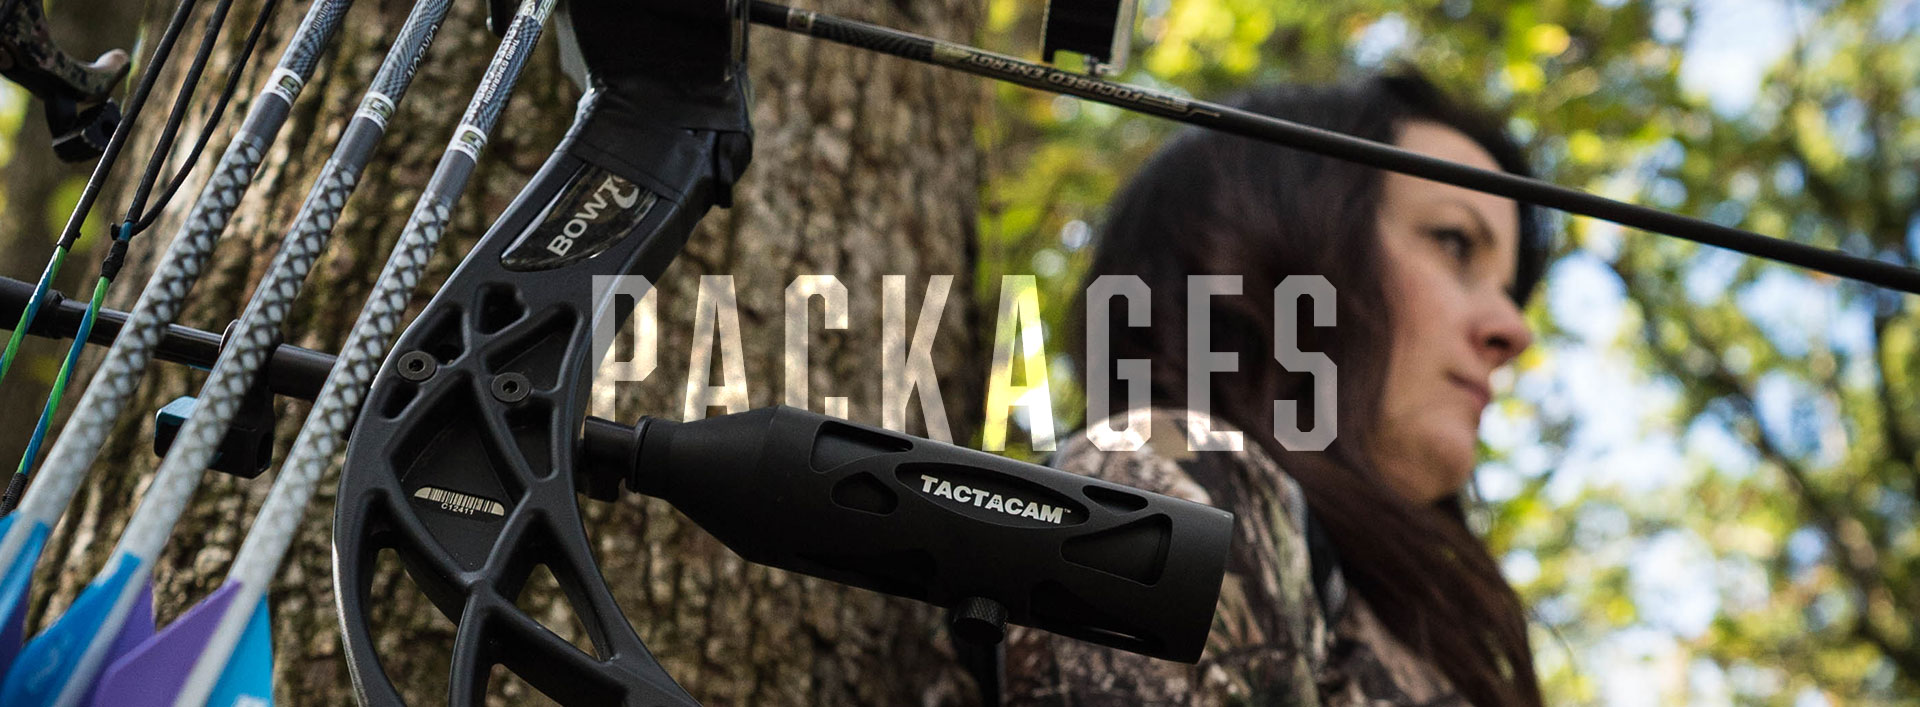 Tactacam Packages